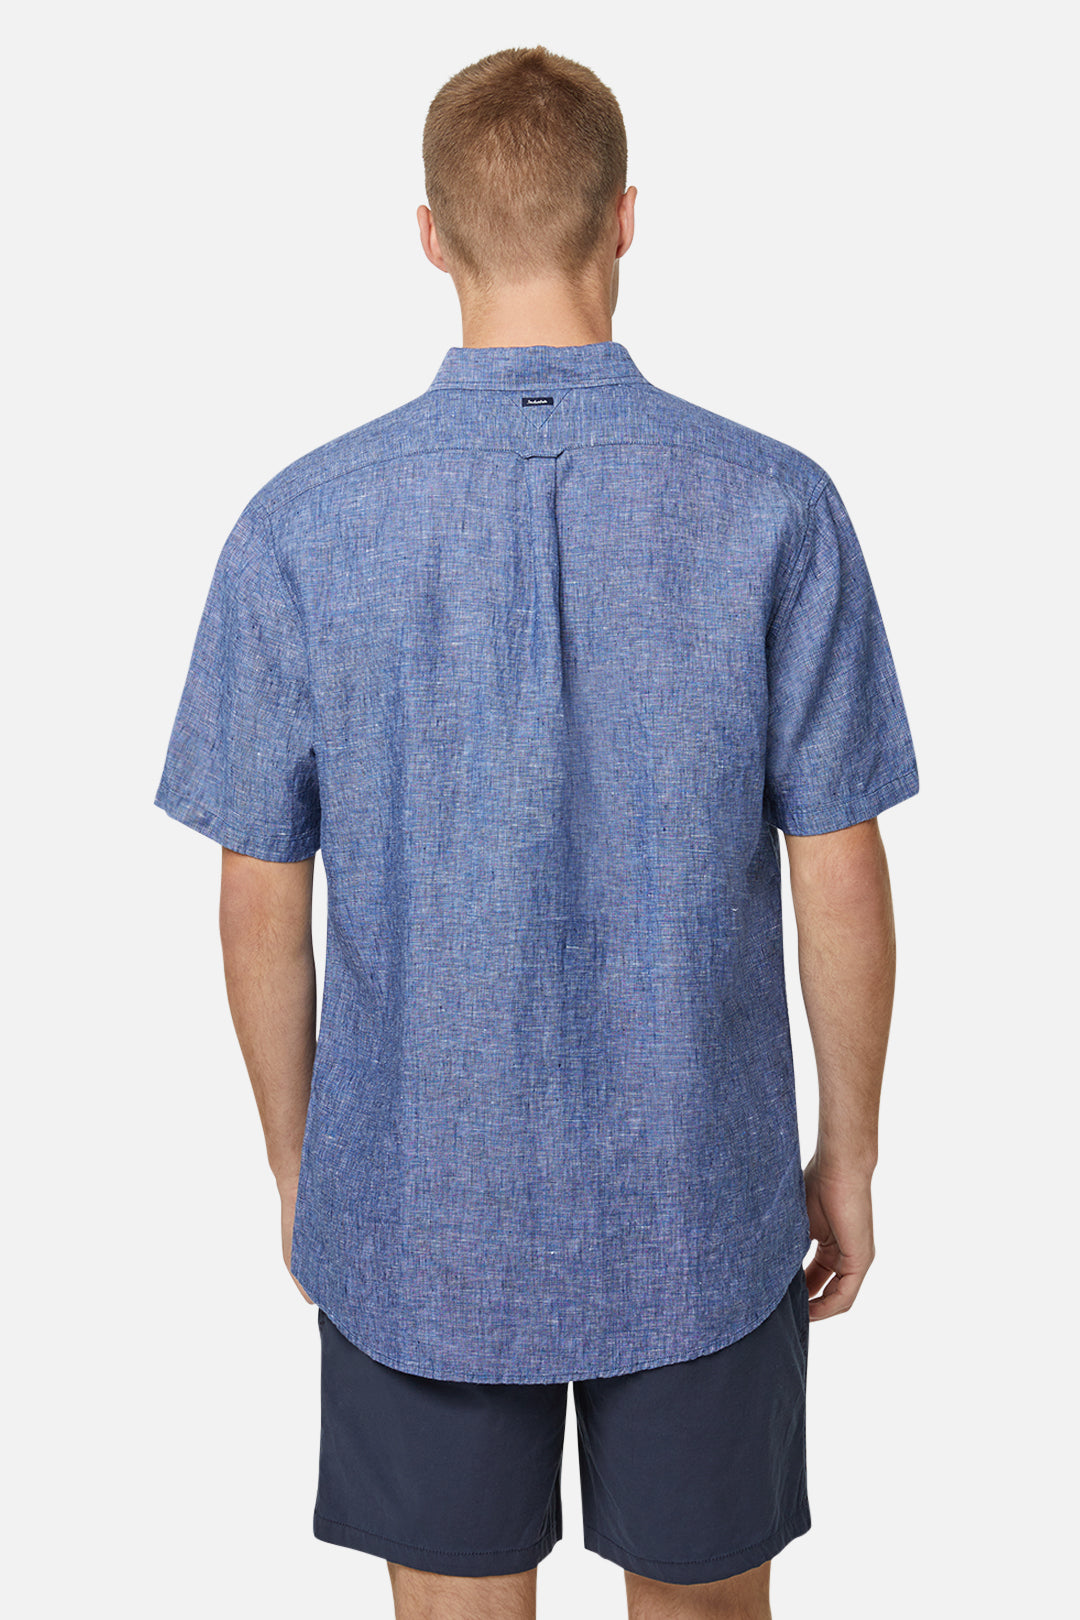 The Newry S/S Shirt - Navy